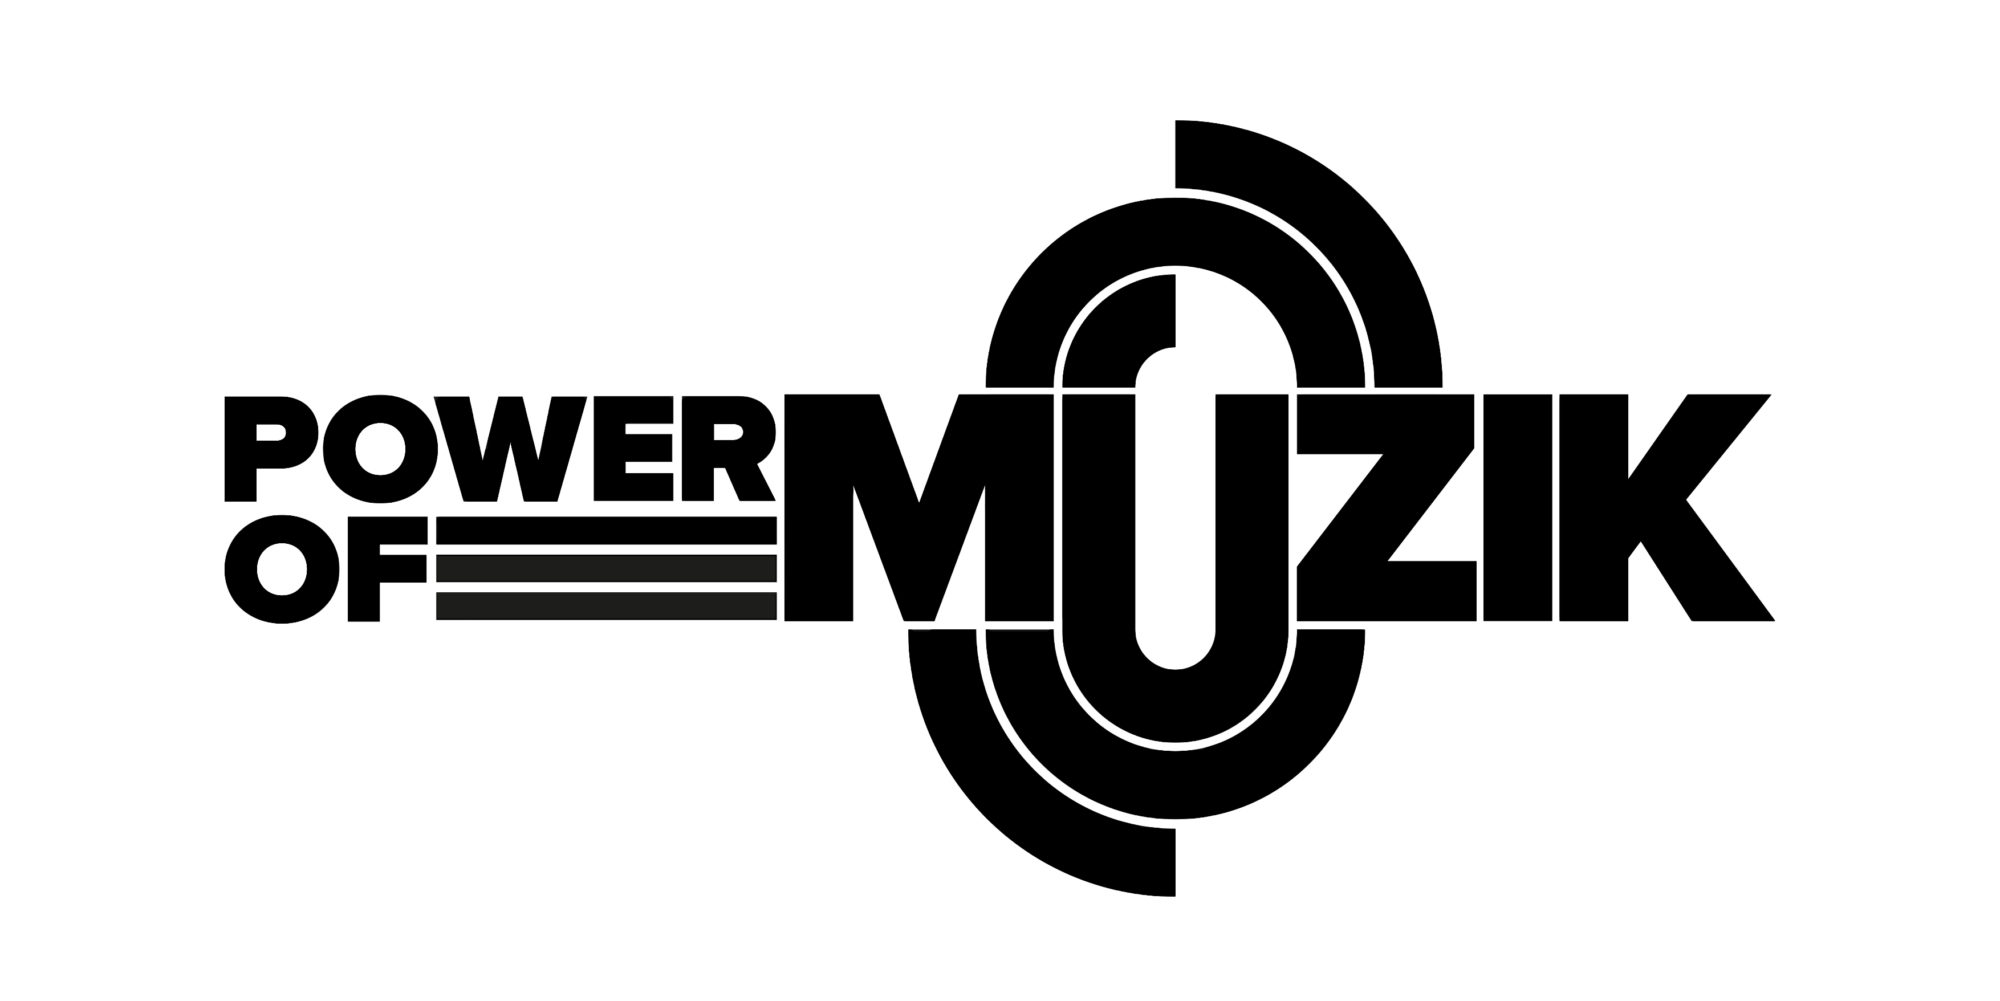 Power of Muzik